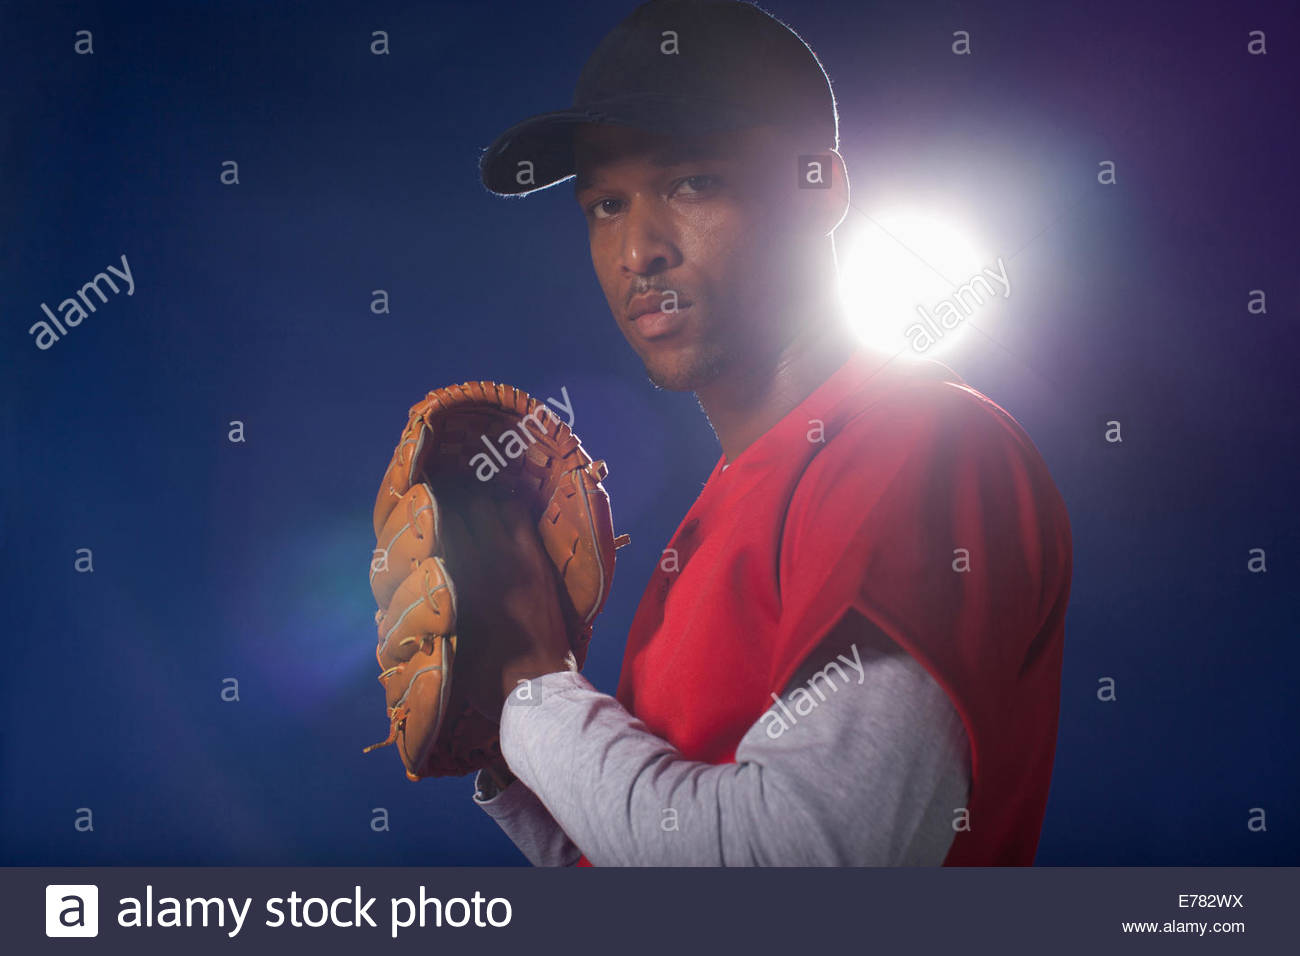 Baseball player holding glove - Stock Image